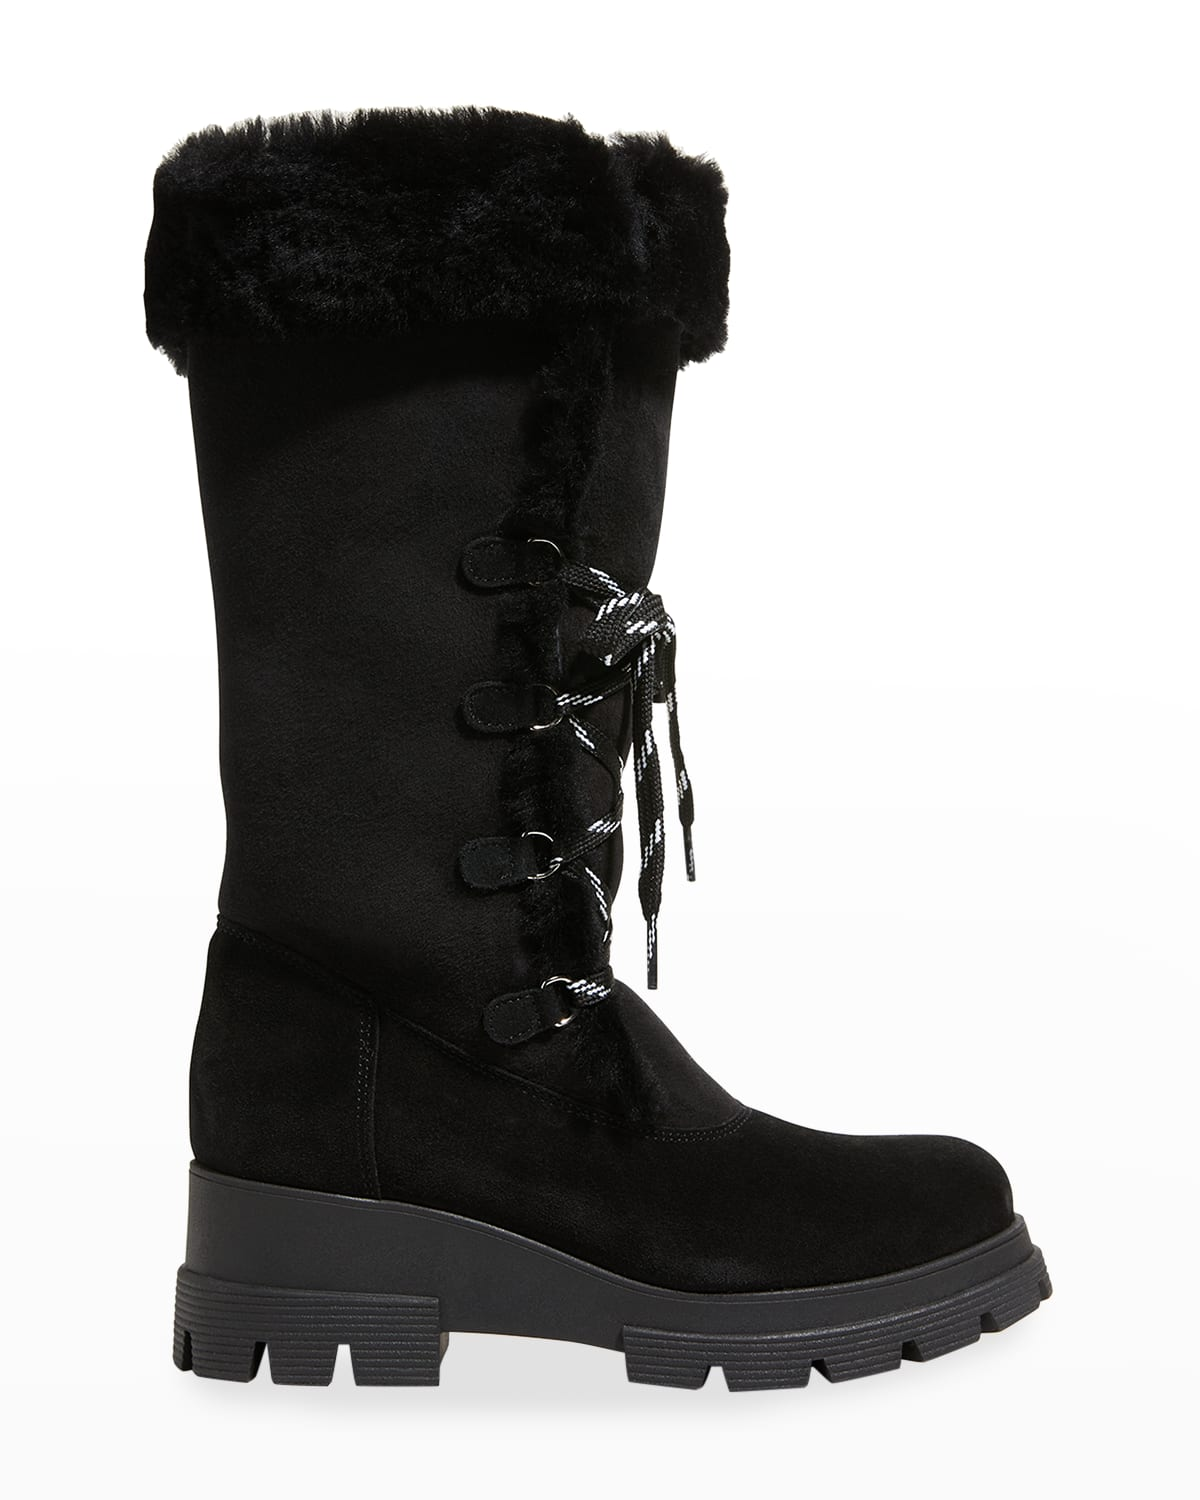 Zanabel Suede Shearling Lace-Up Boots